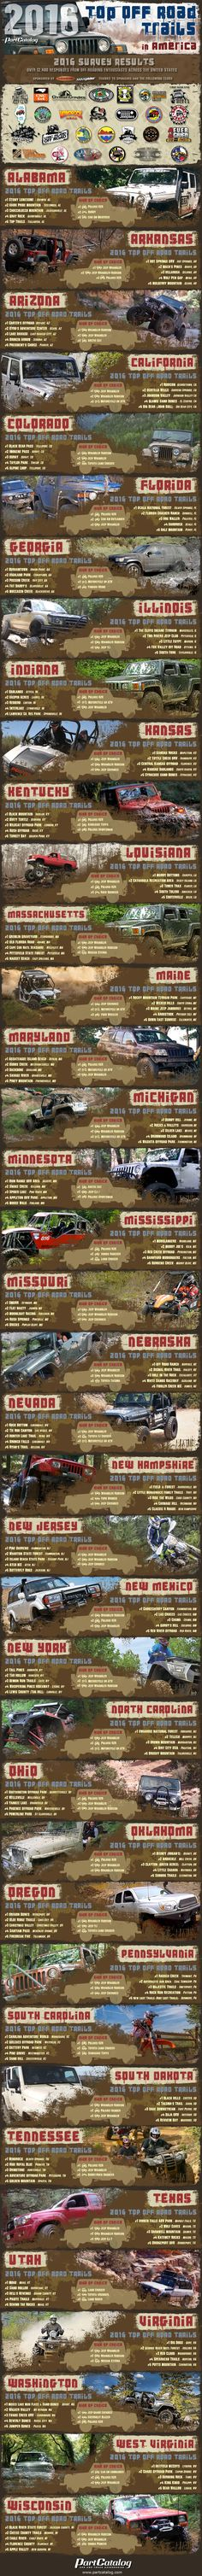 2016 Top Off Road Trails & Parks in America Jeep Wj, Jeep Wrangler Tj, Jeep Wrangler Unlimited, Jeep Truck, Ford Trucks, Jeep Gear, Jeep Camping, Hummer H3, Offroad